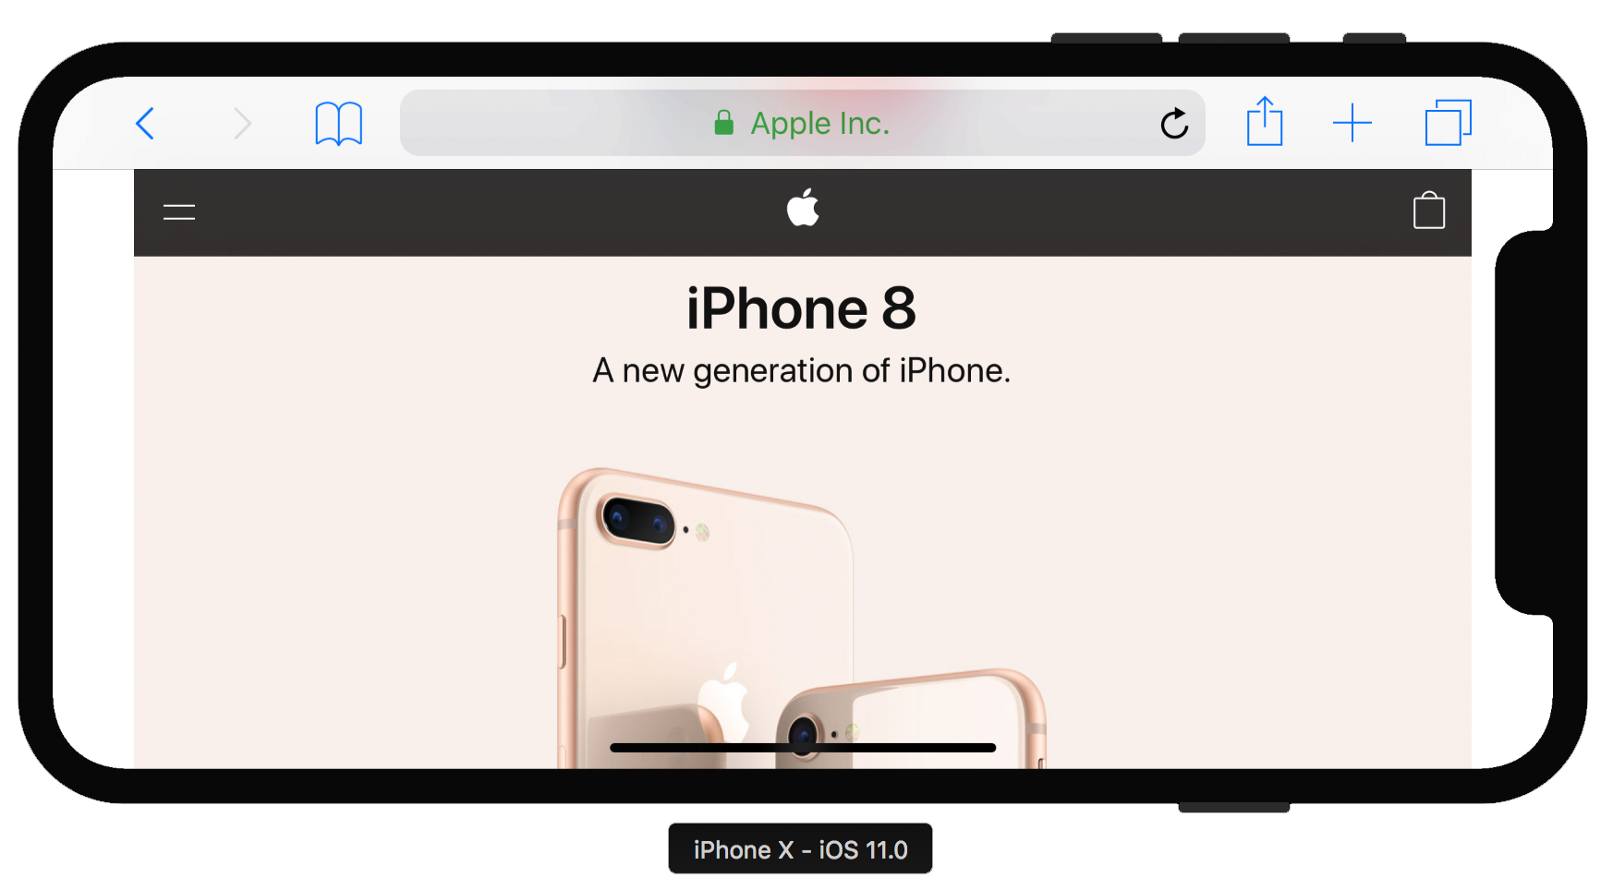 designing responsive webpages for the iphone x u2013 peach studio u2013 medium